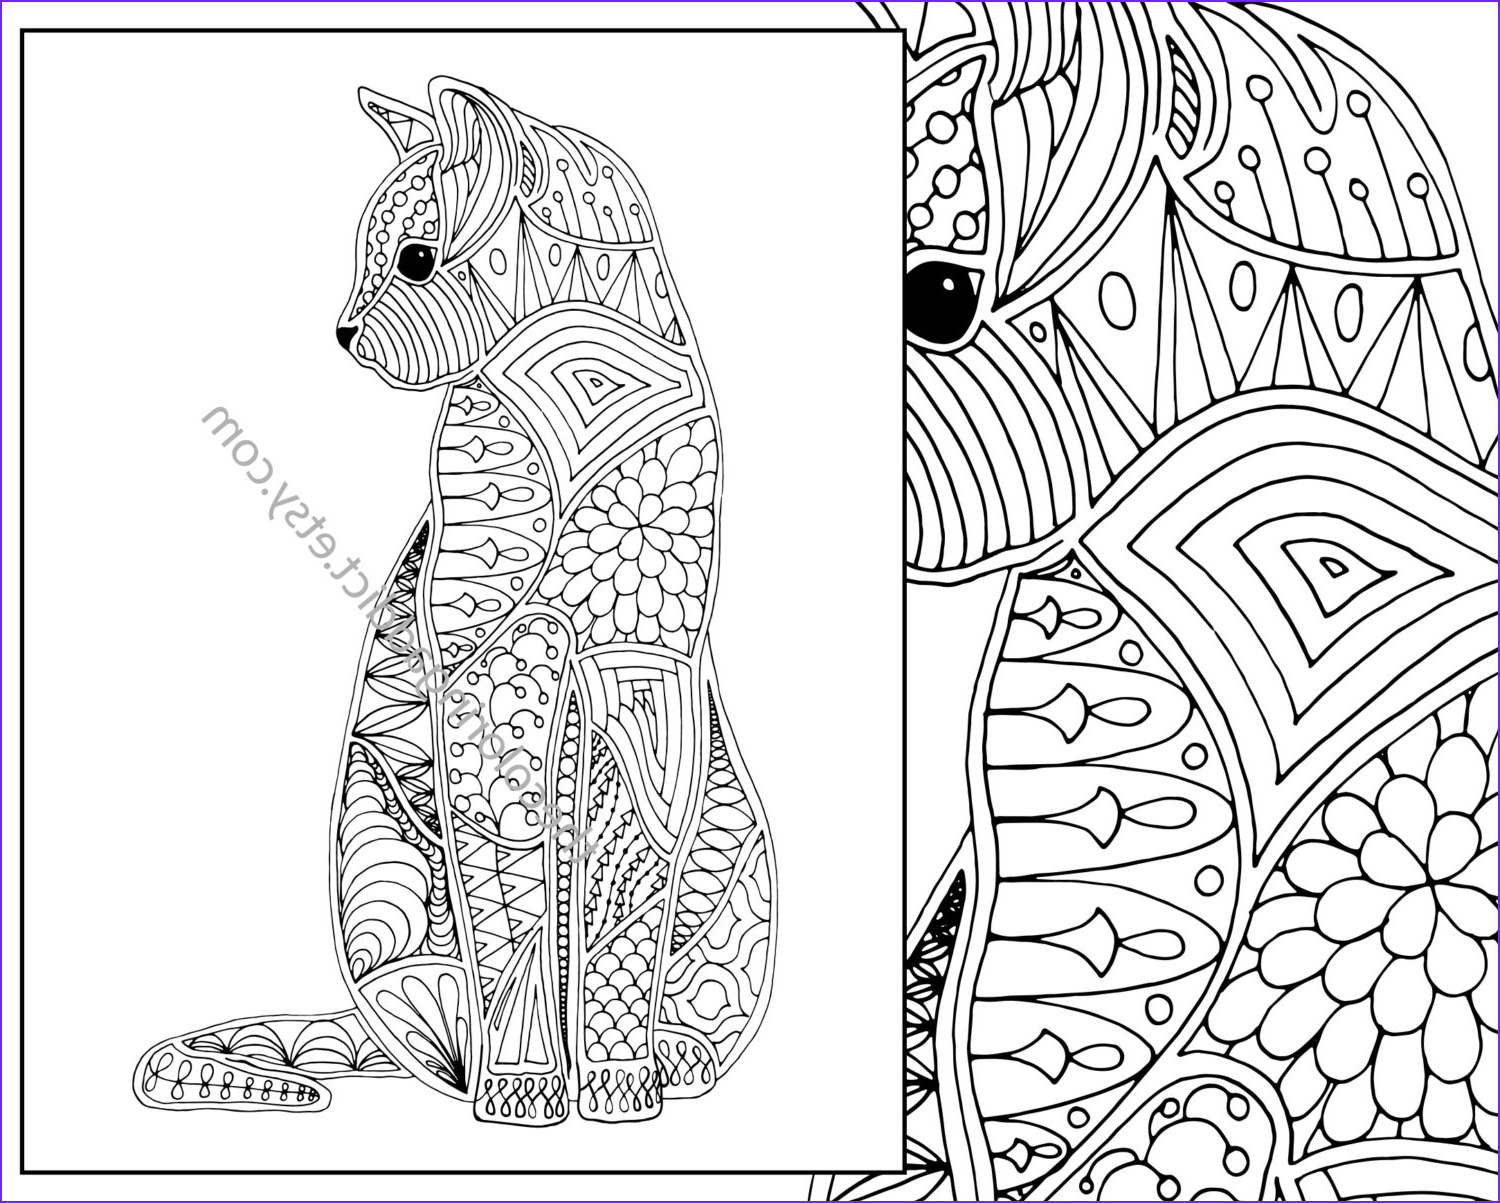 Adult Coloring Book Cat New Collection Cat Coloring Page Advanced Coloring Page Adult Coloring